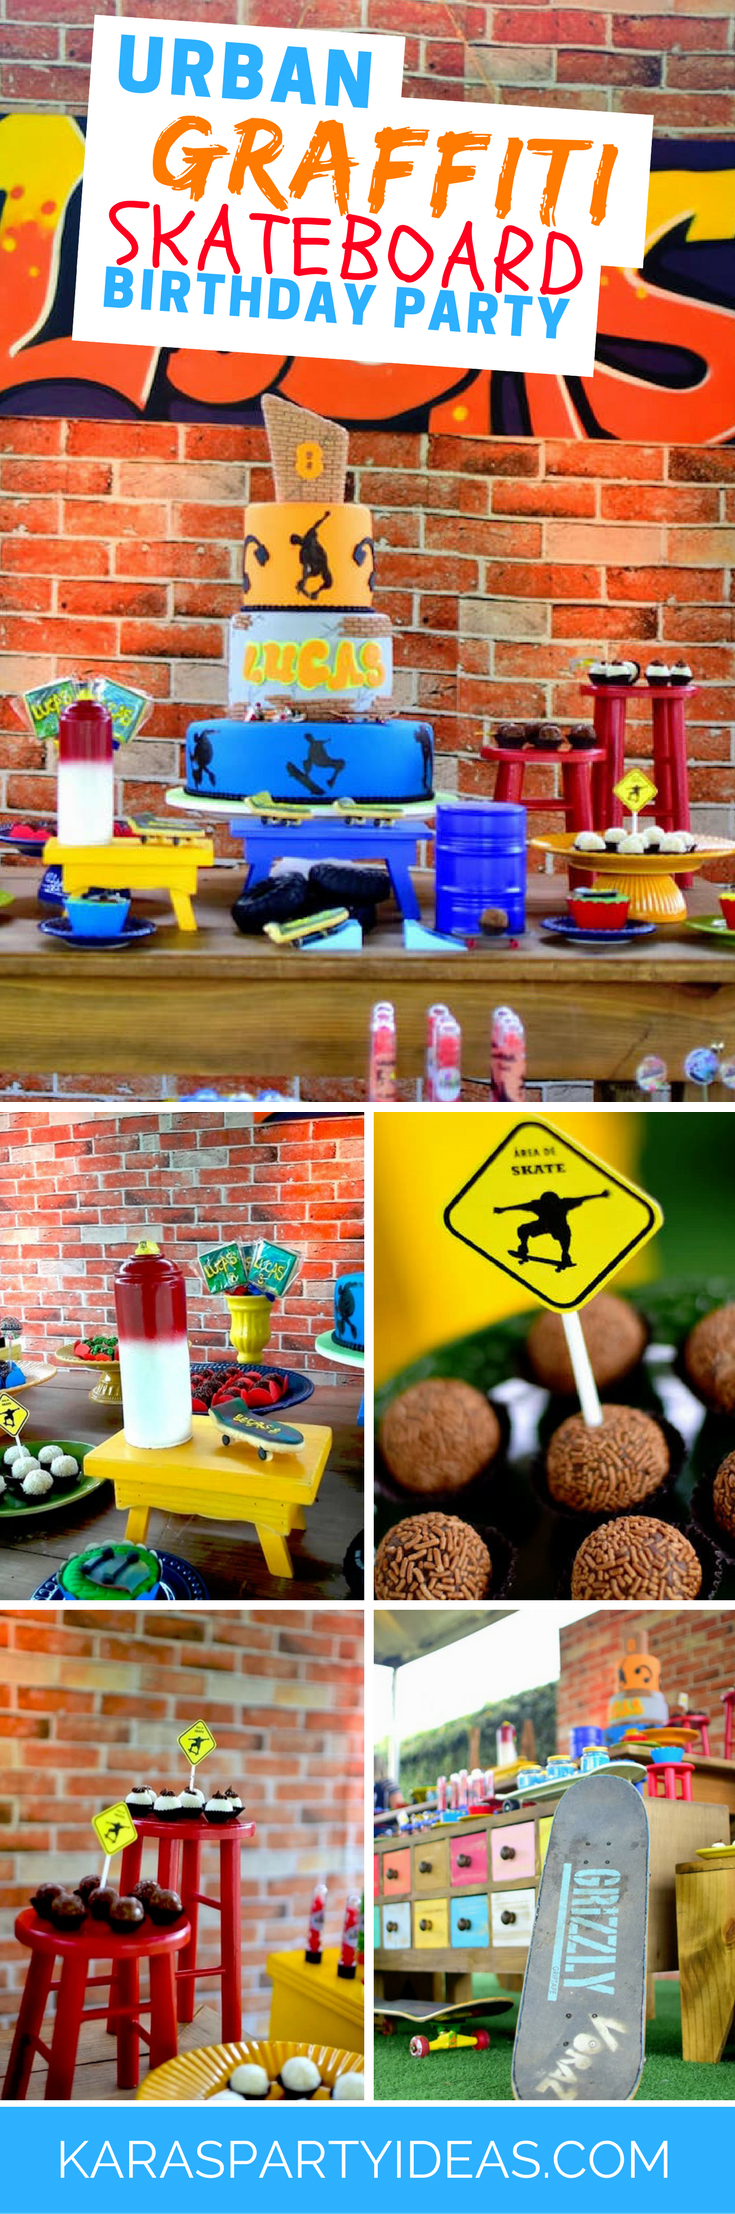 Urban Graffiti Skateboard Birthday Party via Kara's Party Ideas - KarasPartyIdeas.com